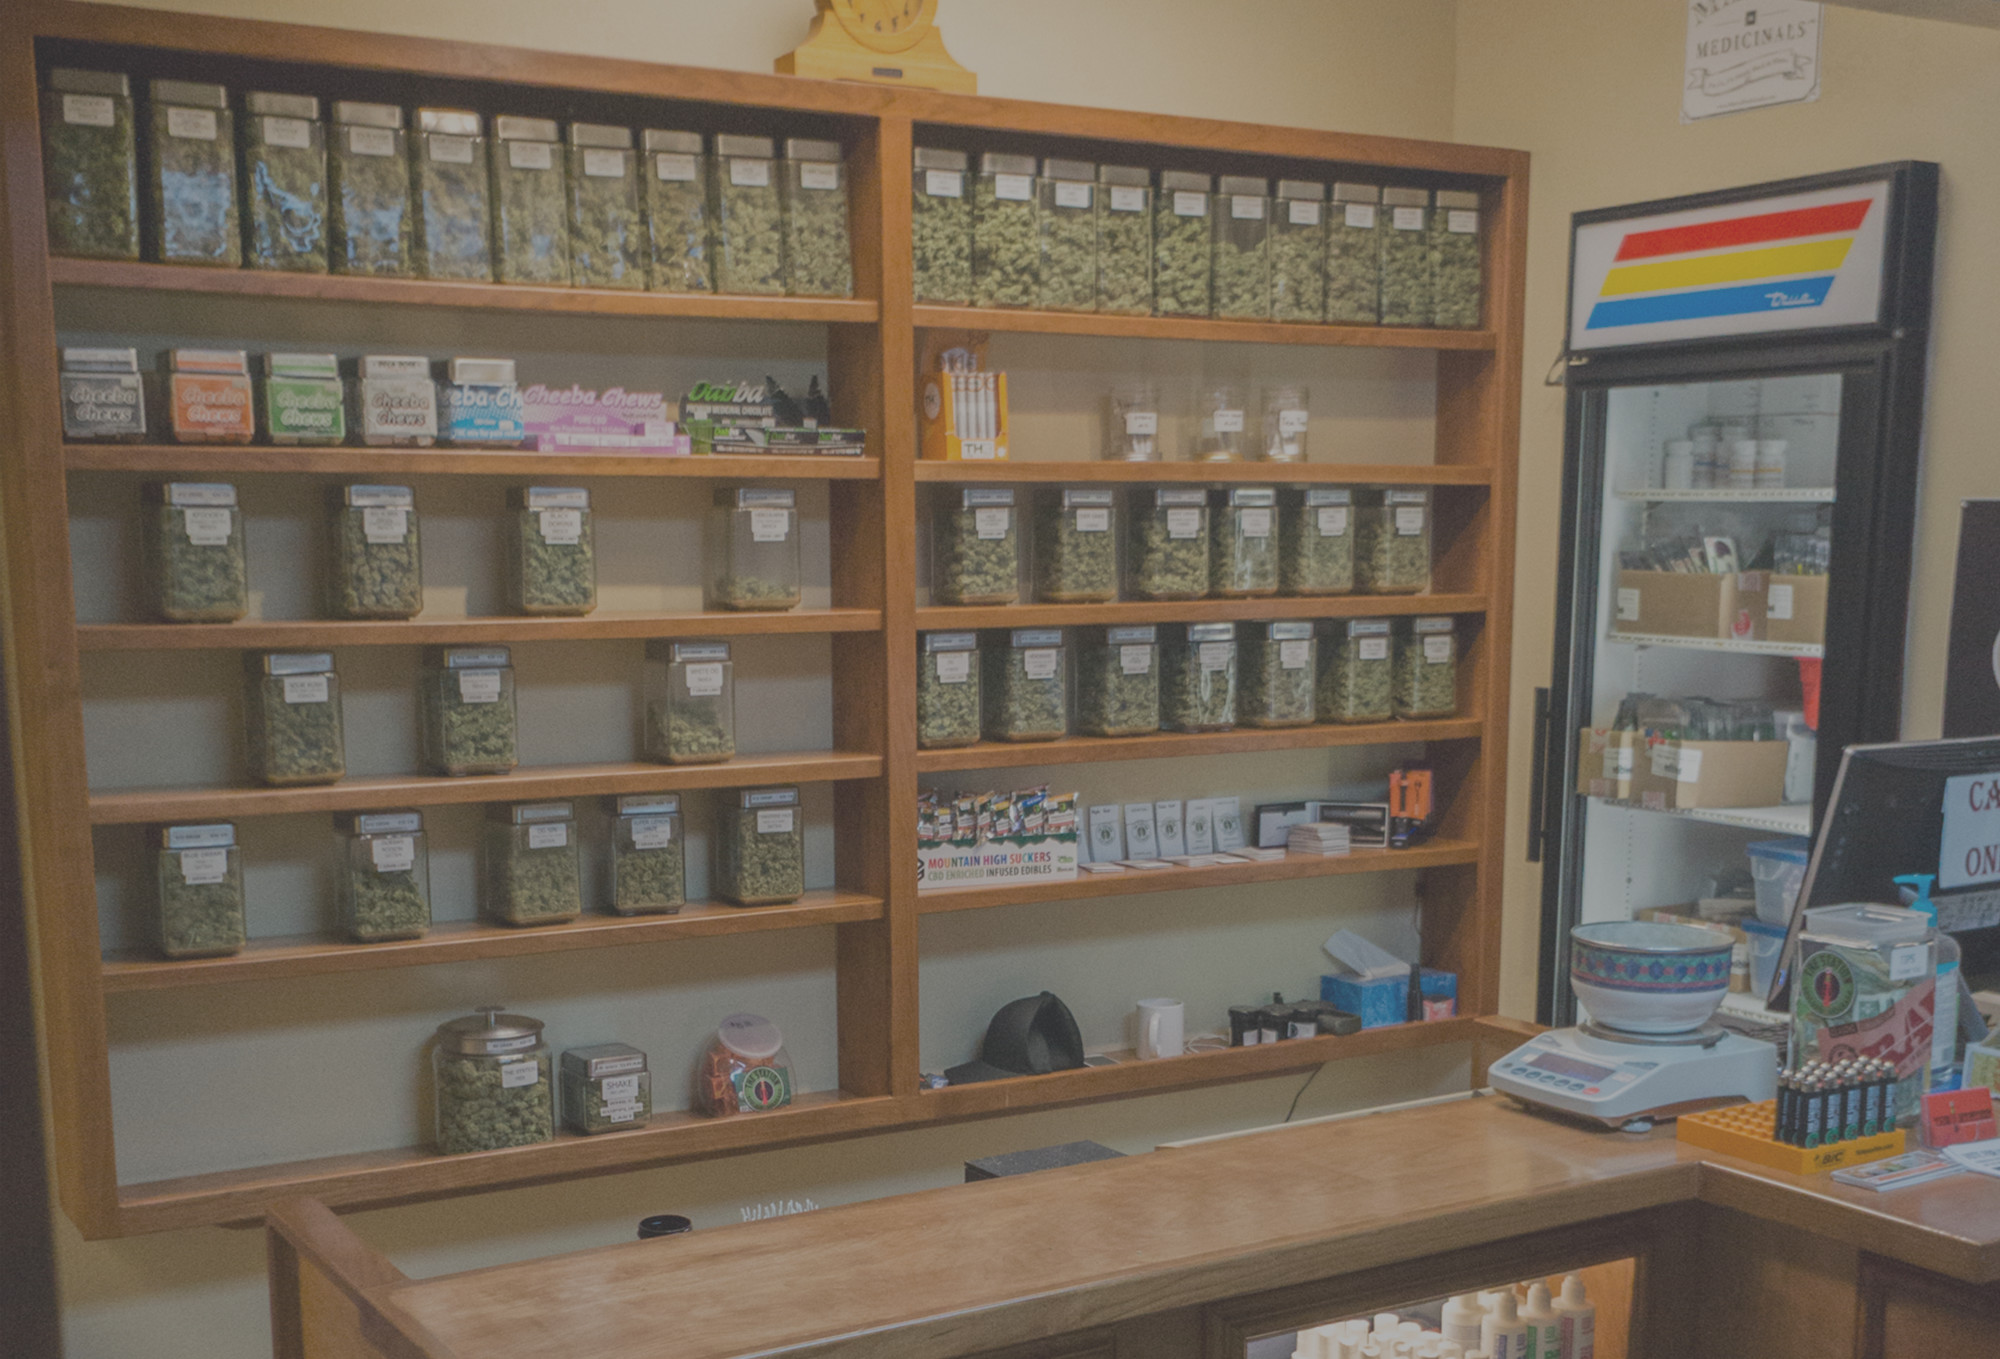 The Station medical marijuana and recreational cannabis dispensary in Boulder, Colorado